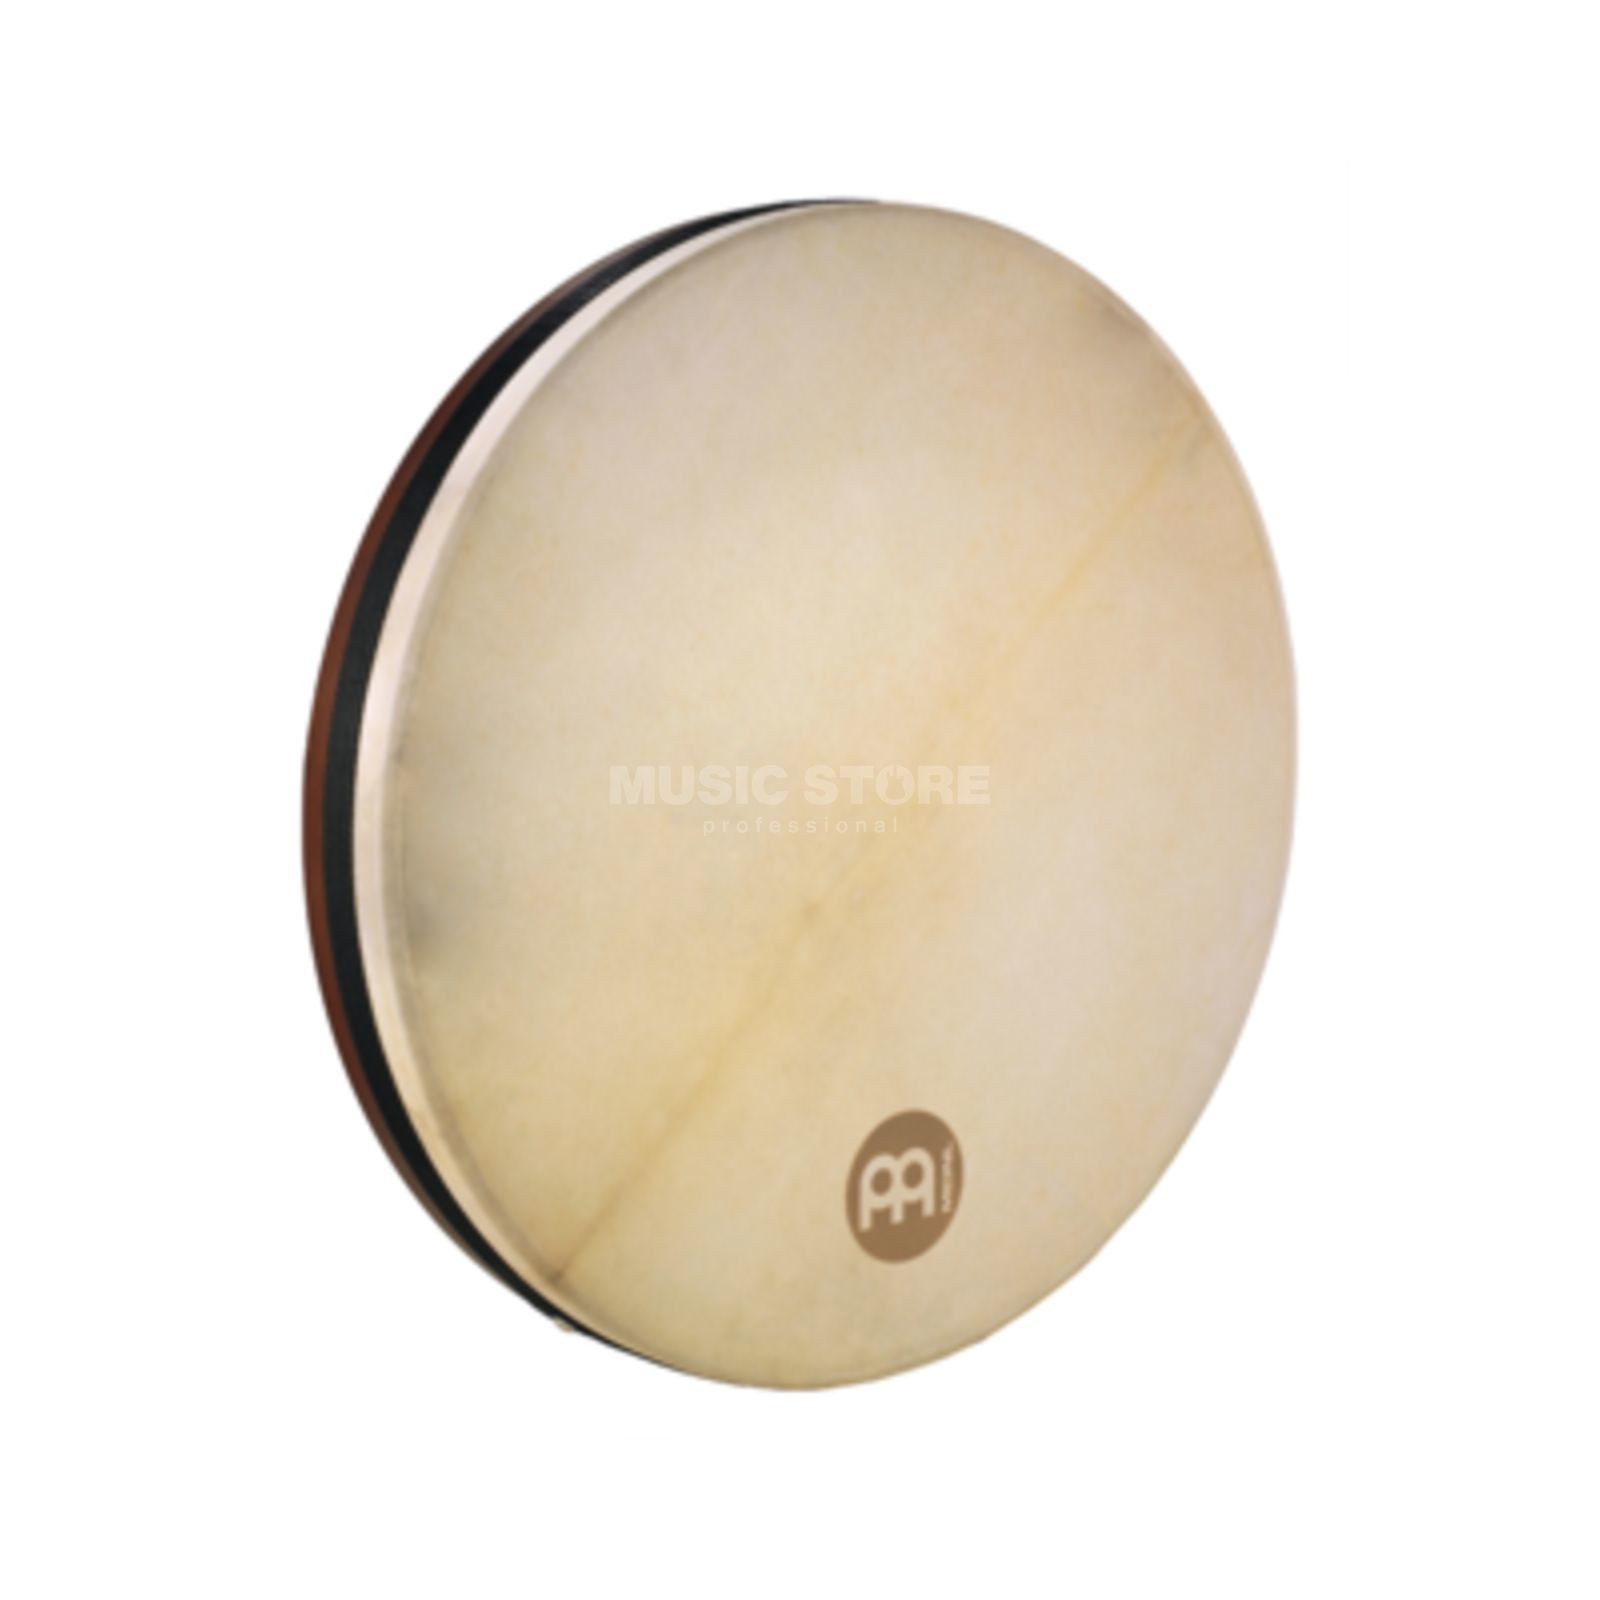 "Meinl Frame Drum Tar FD18T, 18"", African Brown #AB Product Image"